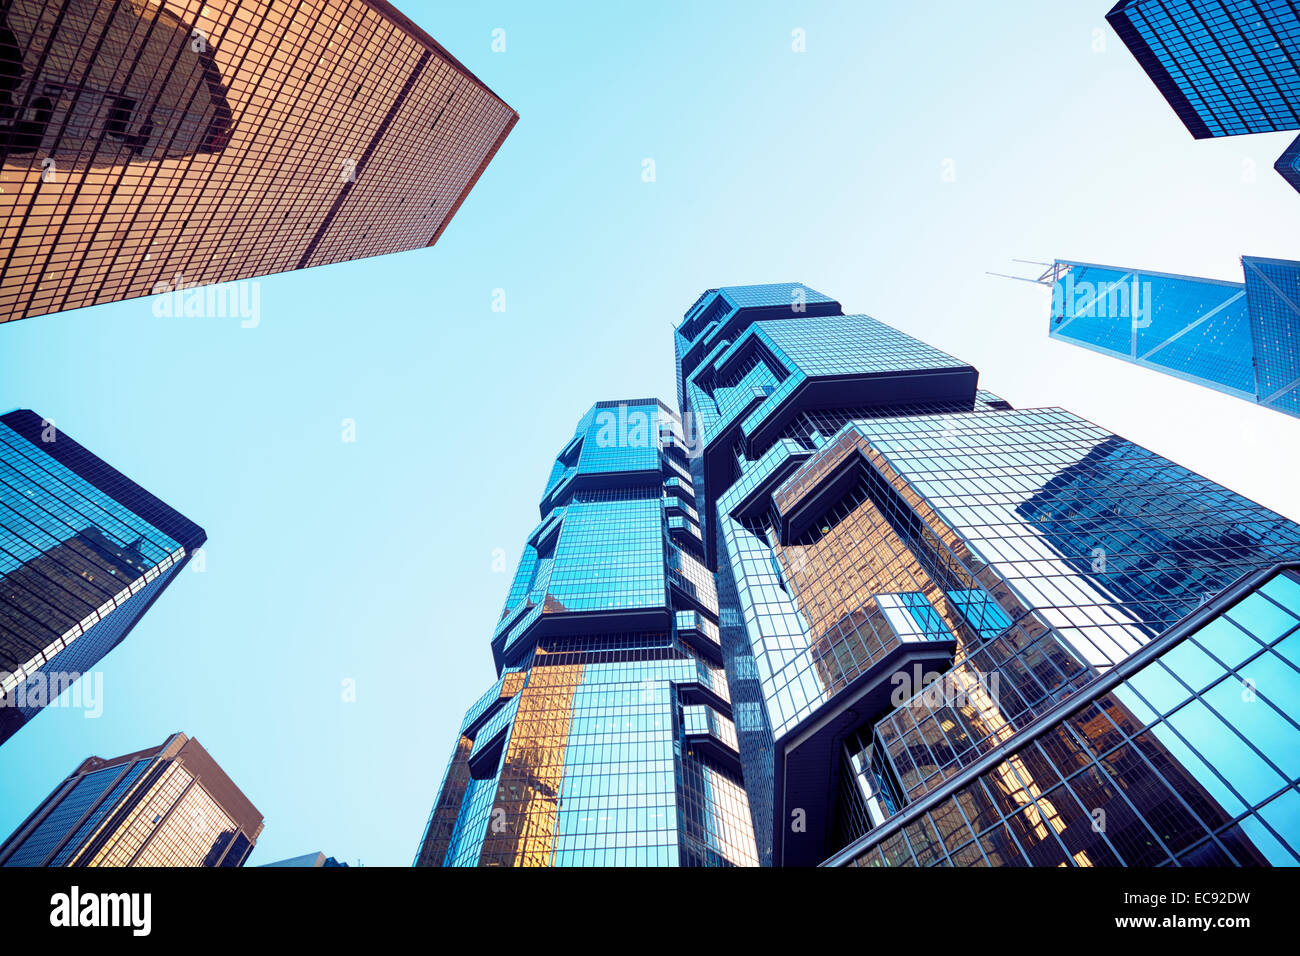 Central district in Hong Kong. - Stock Image